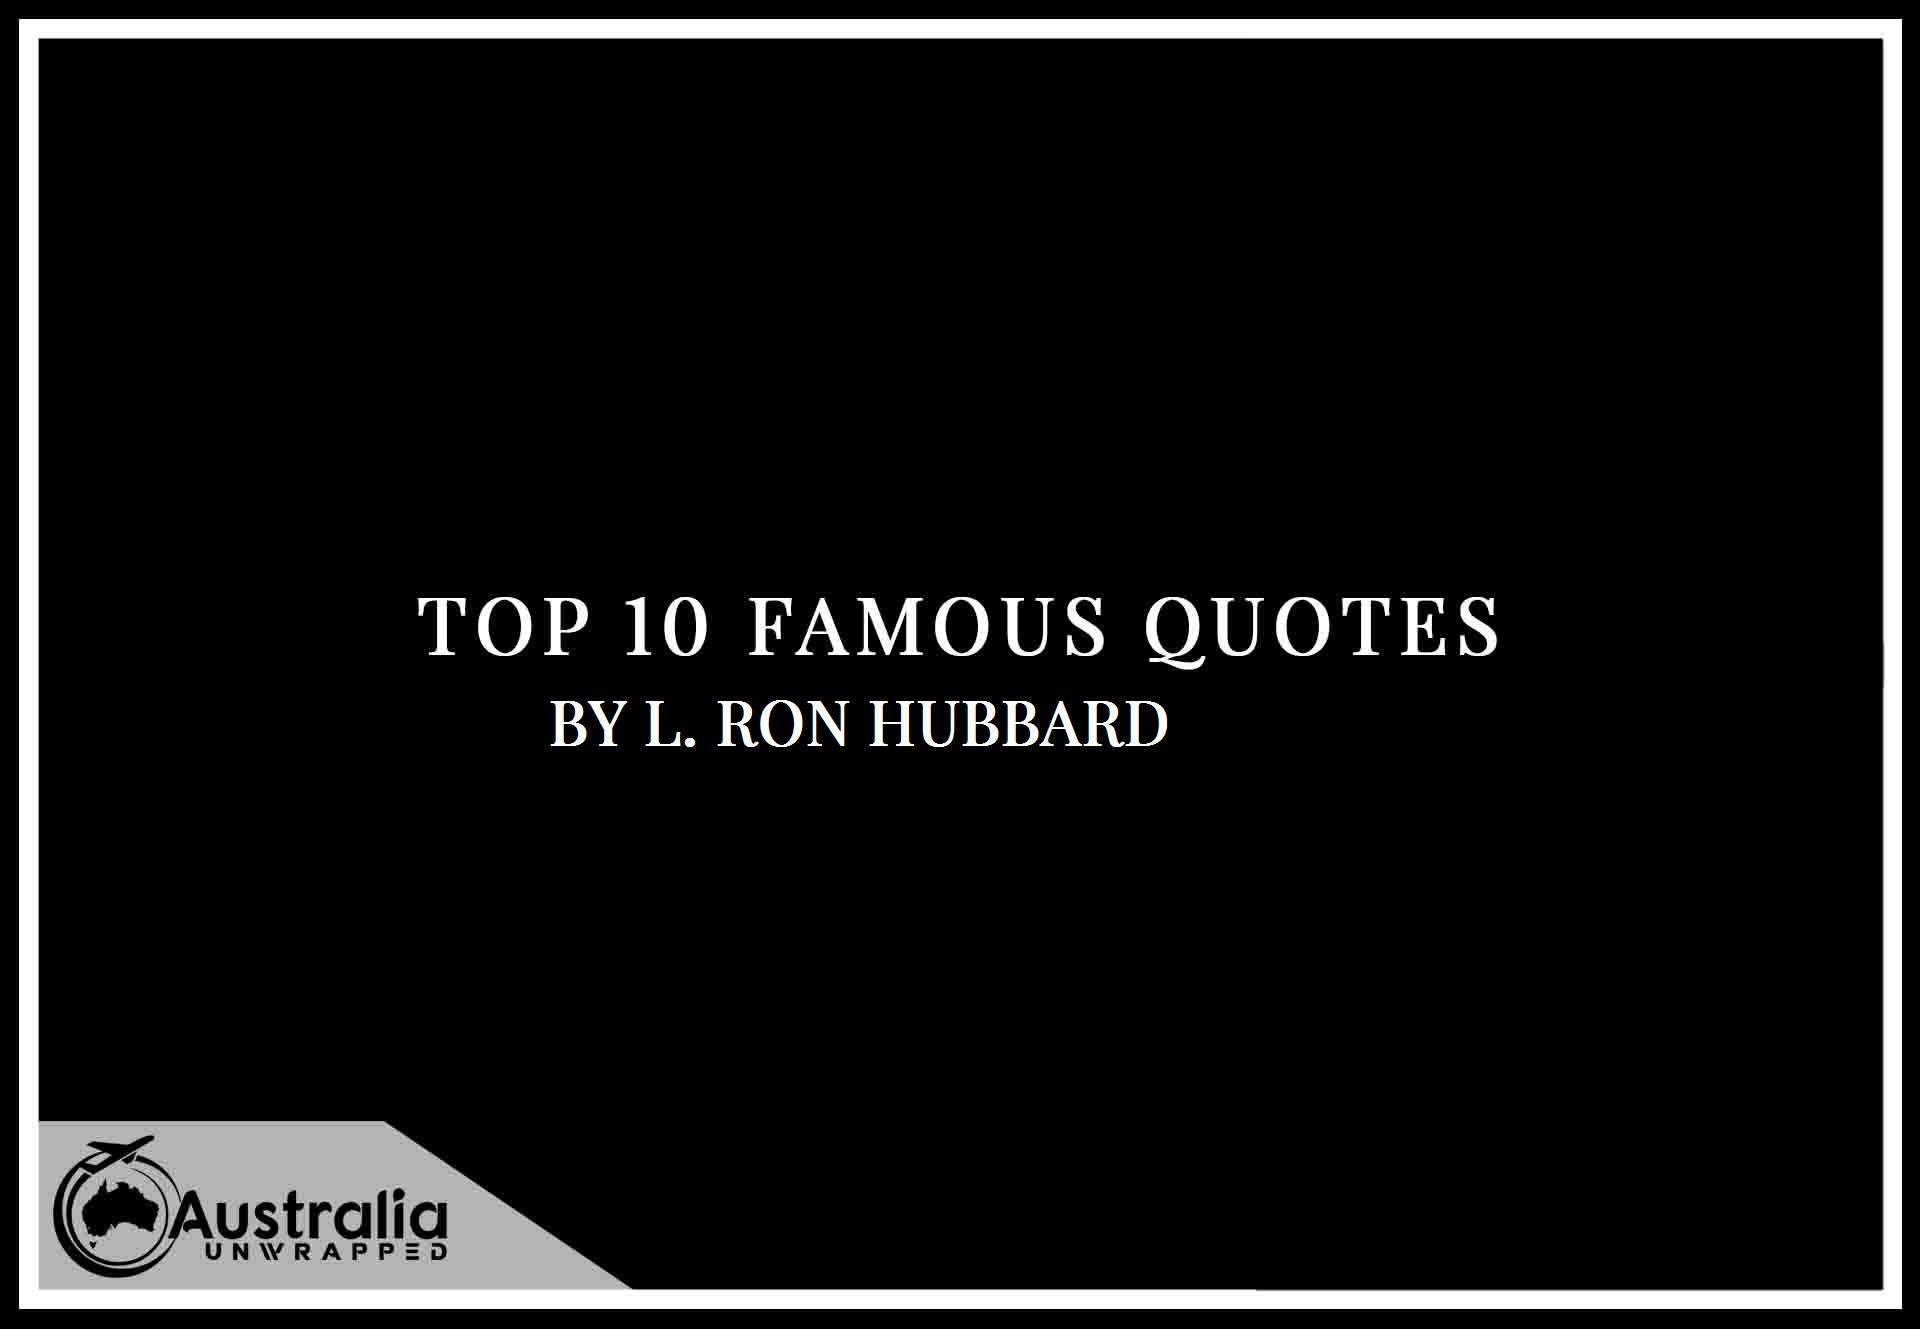 L. Ron Hubbard's Top 10 Popular and Famous Quotes